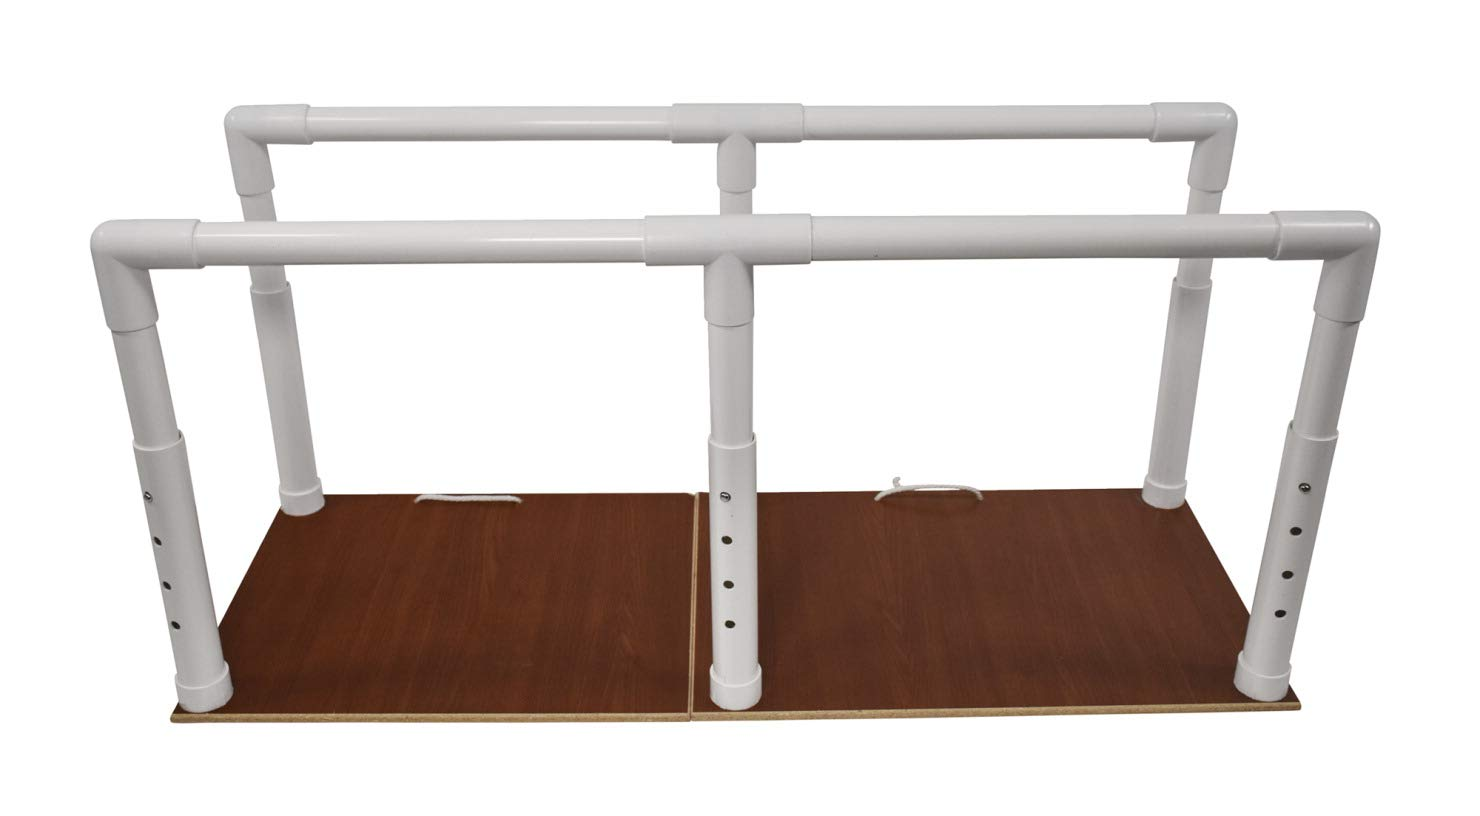 Abilitations My PortaBars Parallel Bars with Mesh Bag, Adjustable